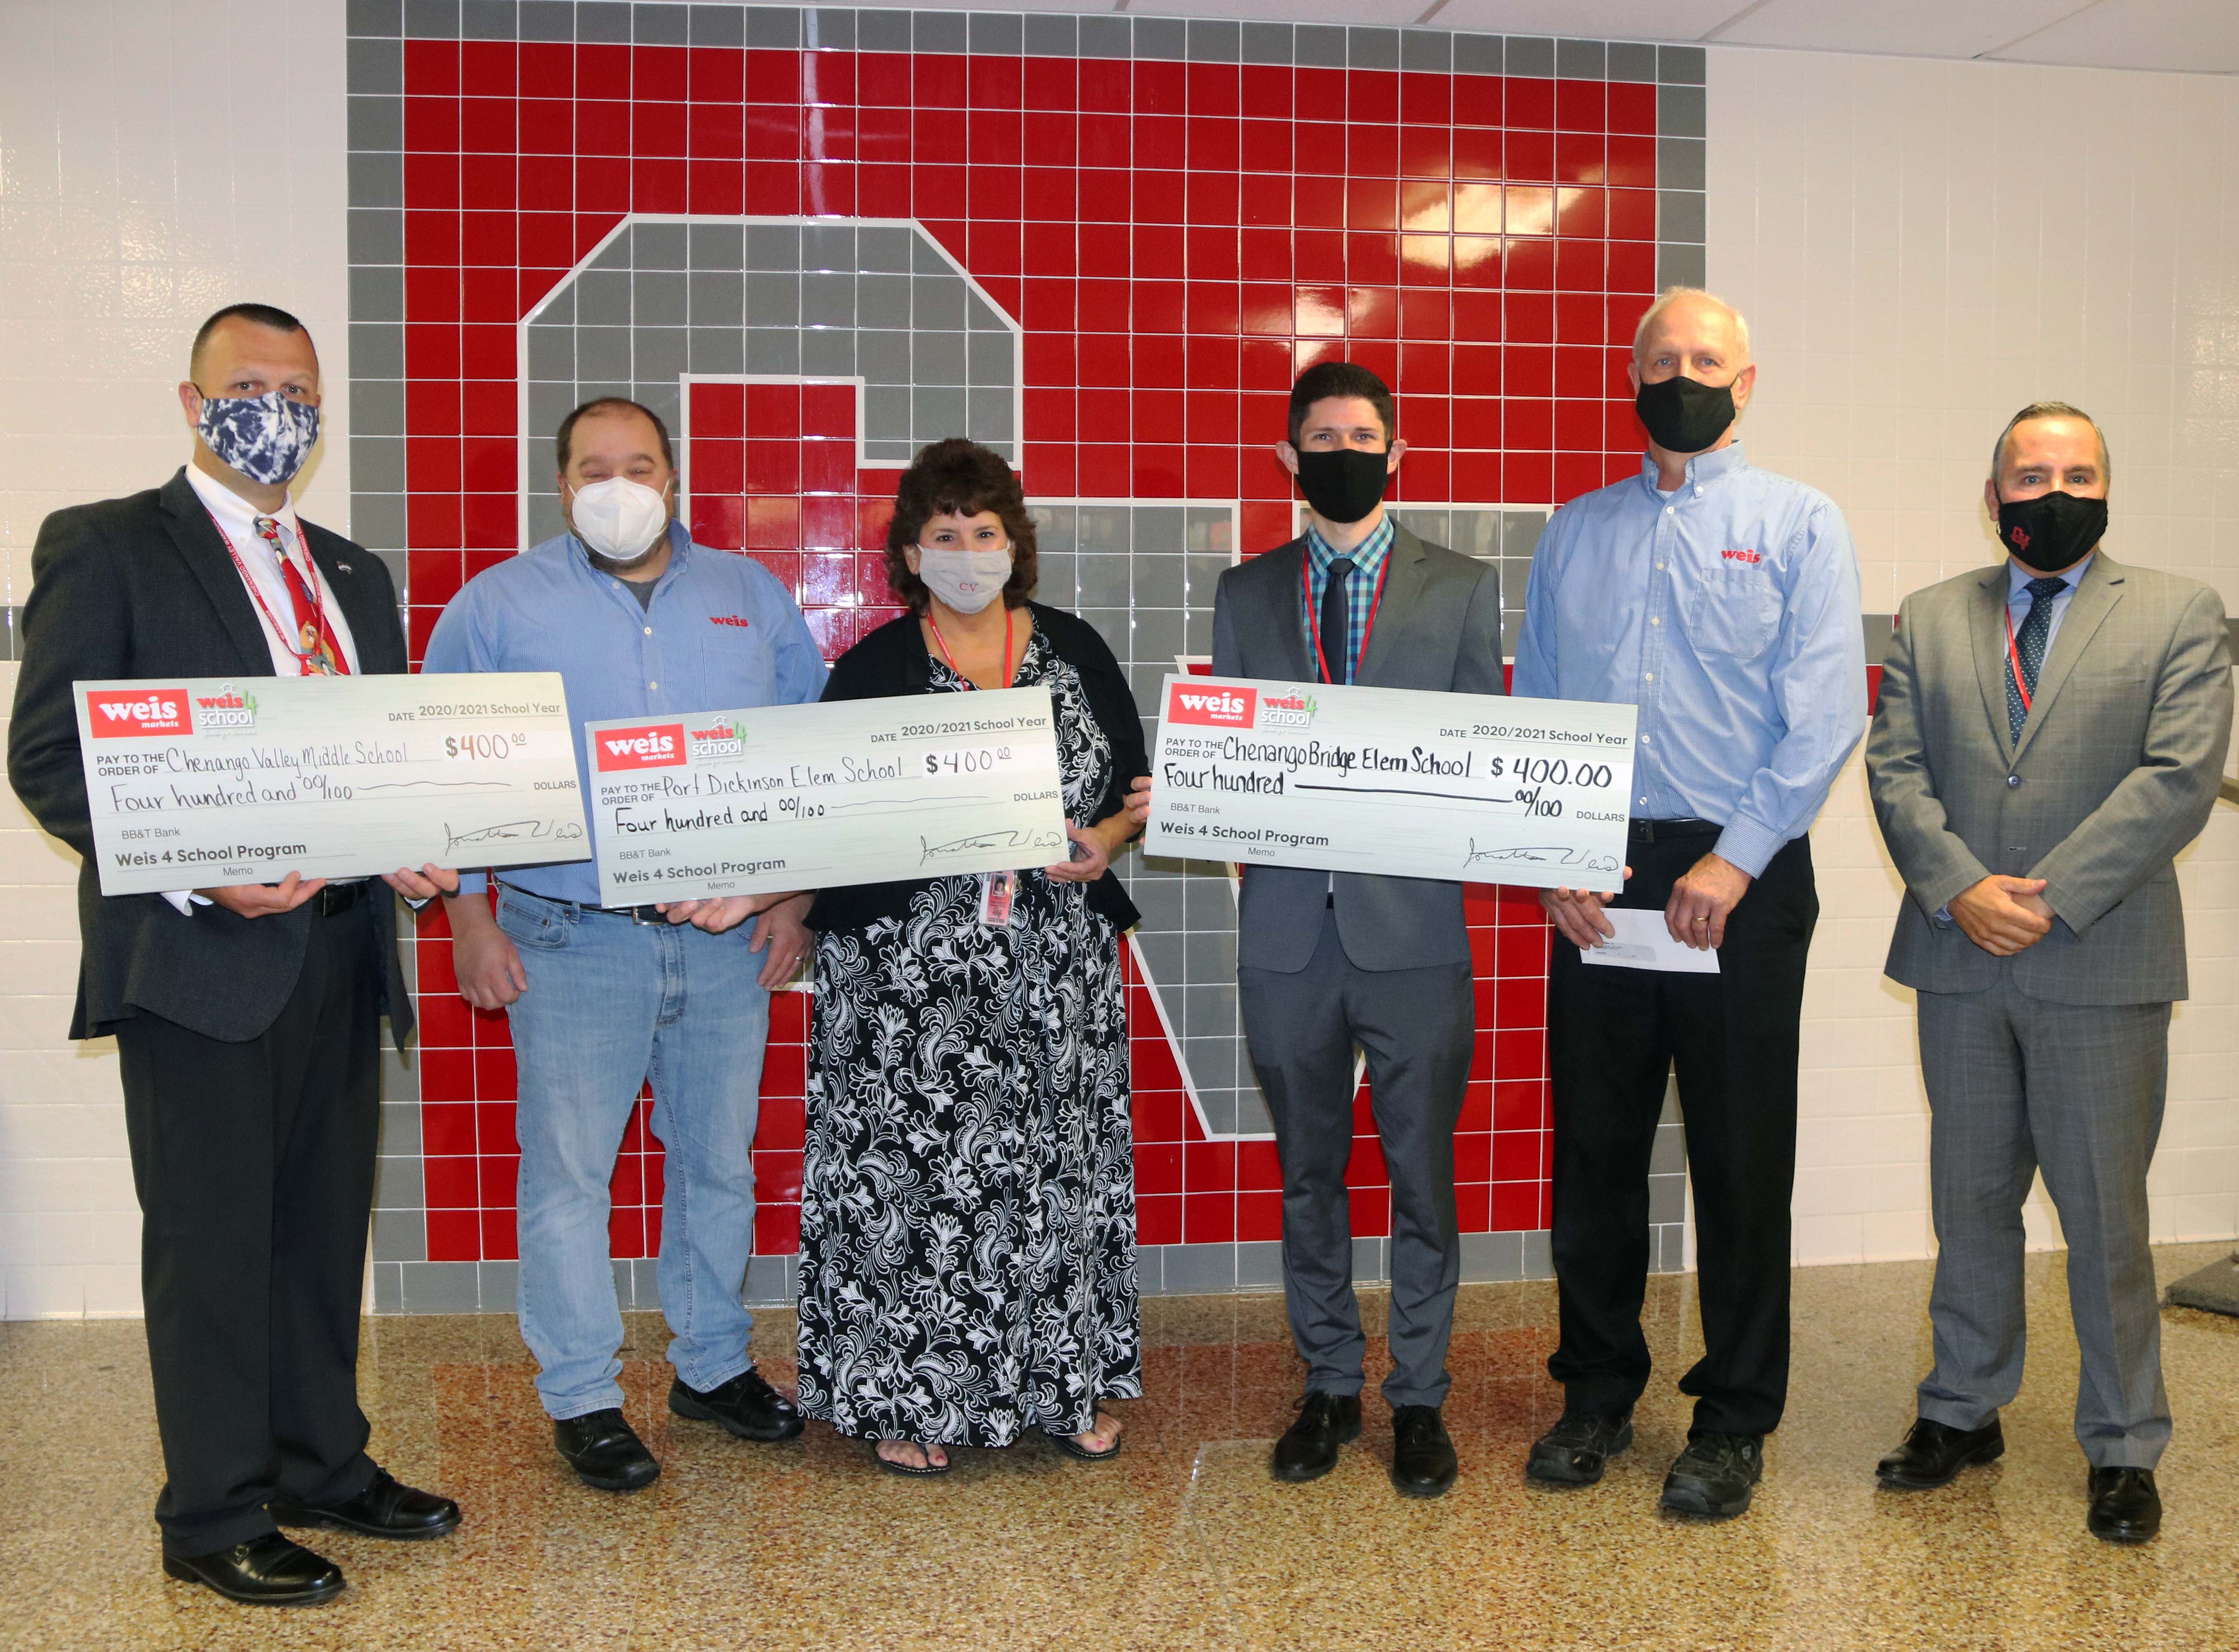 principals being presented with weis donations